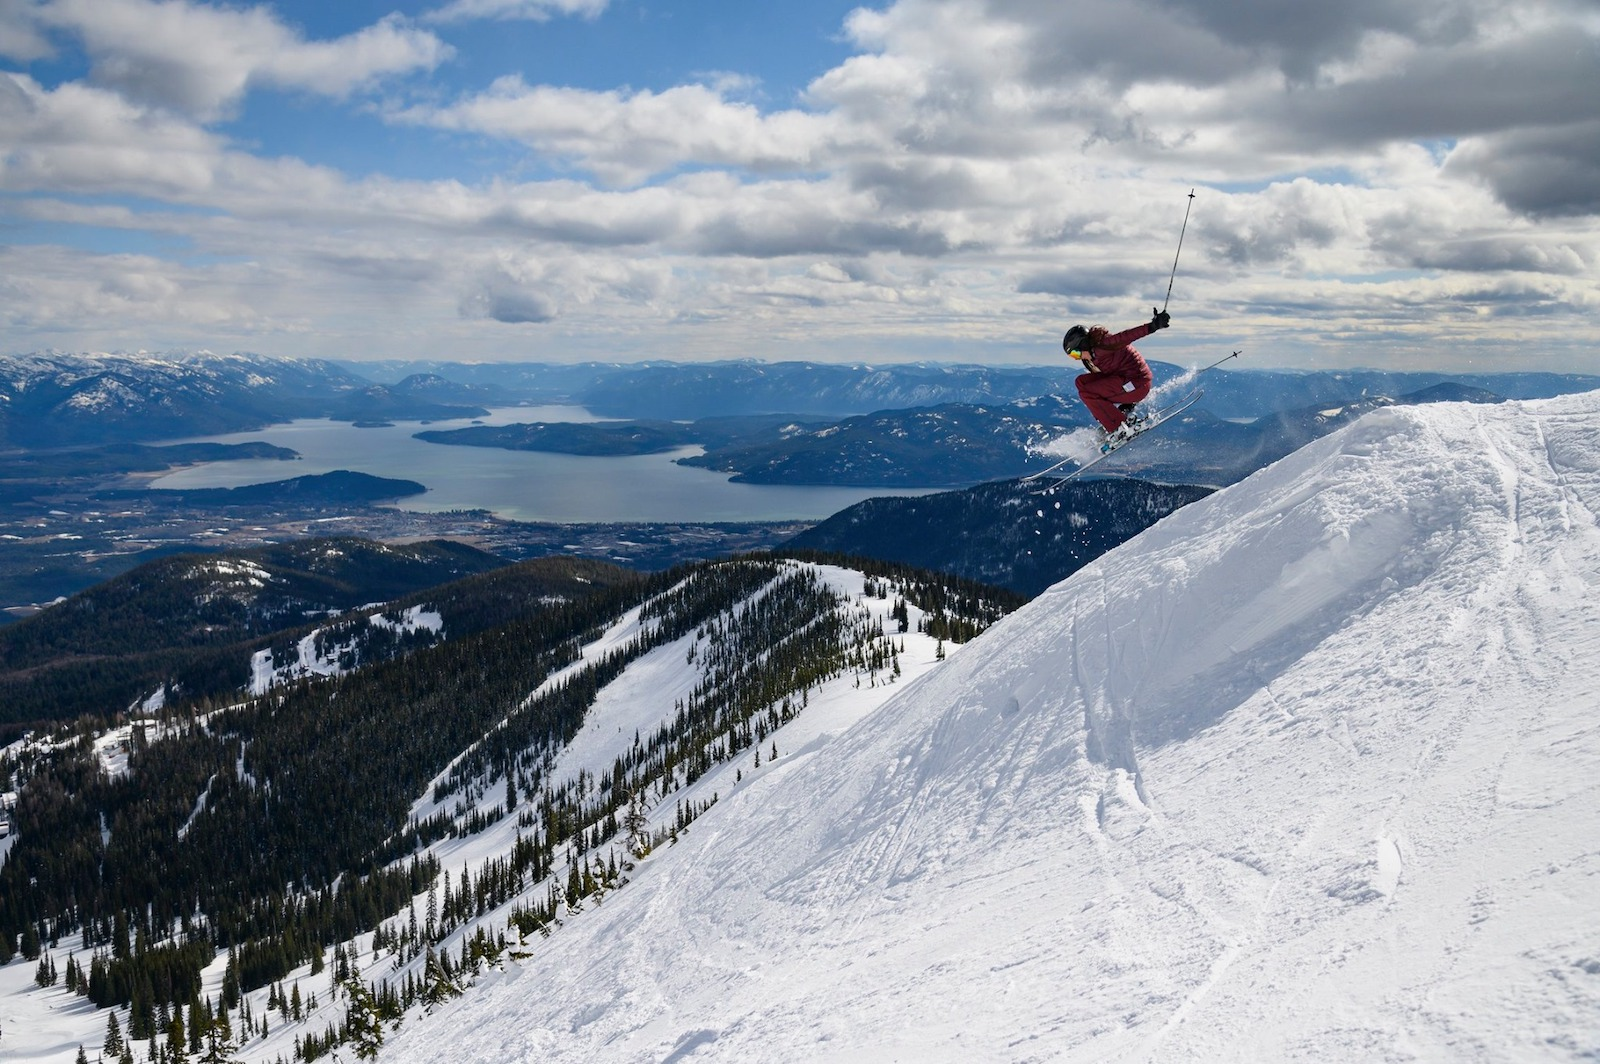 Image of as skier in red jumping catching air at Schweitzer Mountain Resort in Idaho